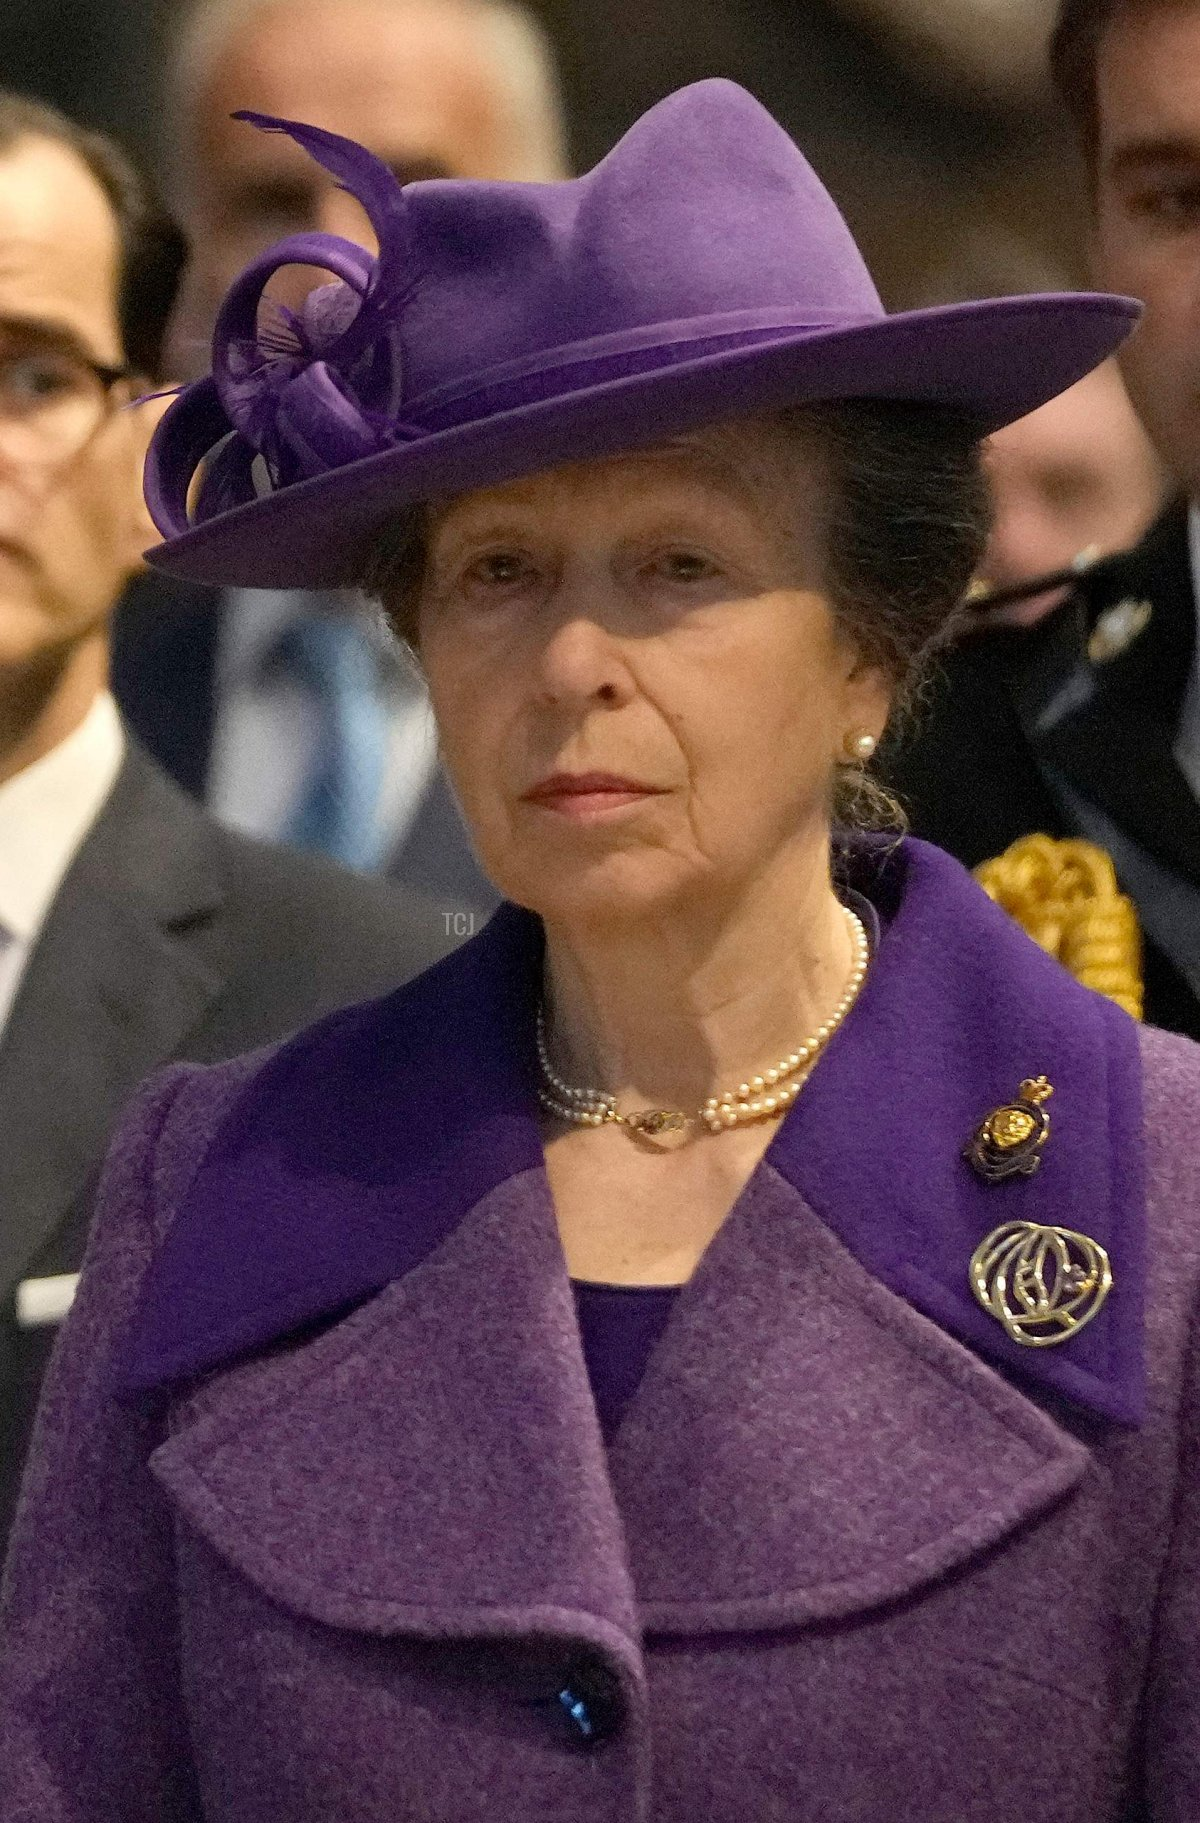 Britain's Queen Elizabeth II (L) and Britain's Princess Anne, Princess Royal (R) attend a Service of Thanksgiving to mark the Centenary of the Royal British Legion at Westminster Abbey in London on October 12, 2021